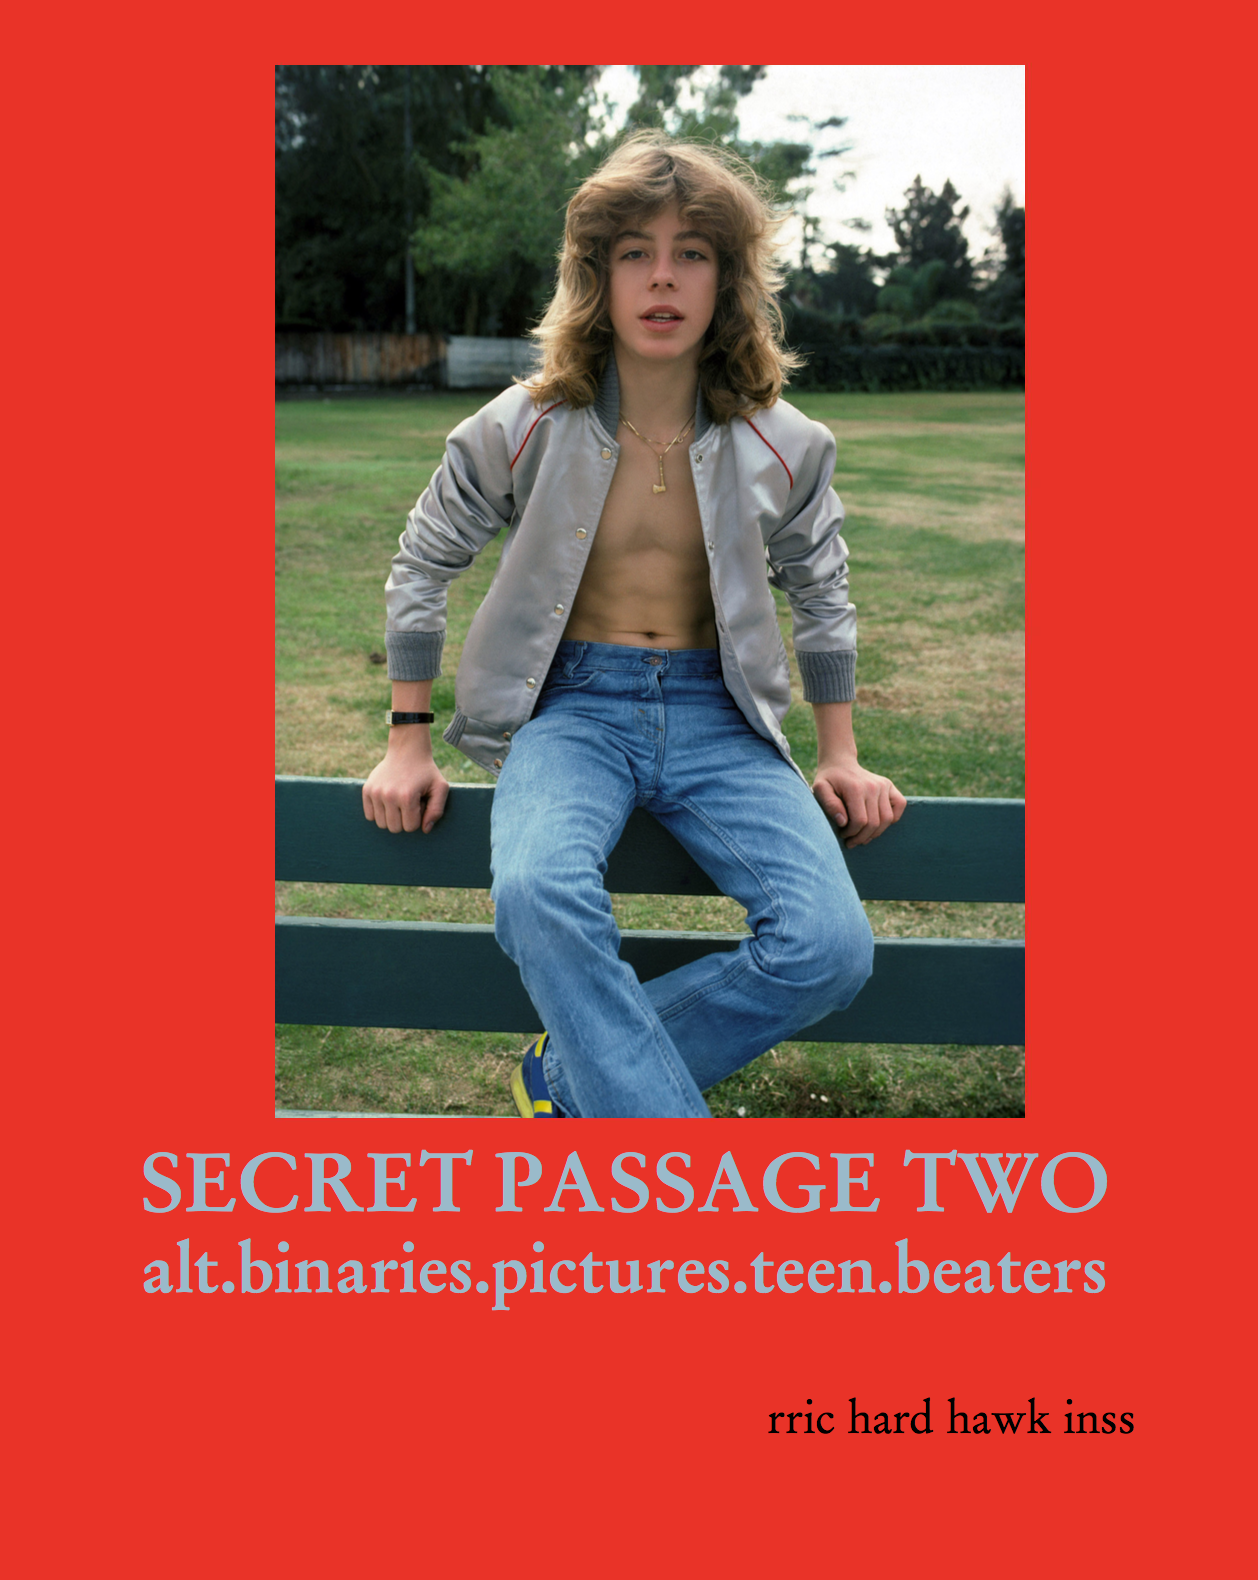 Richard Hawkins – SECRET PASSAGE #TWO: alt.binaries.pictures.teen.beaters 2018, 22 pages, Owrps, fully illustrated in color, 24,8 x 19,6 cm Euro 20,- – SECRET PASSAGE #2 an assembly of found images d'loaded from alt.binaries.pictures. teenidols in 1998 & which incorporate all the artist's dreamy teenage pleasure, cringing inevitabilities & fore-doomed eventualities circa 1979. published '18 rric hard hawk inss & Galerie Buchholz